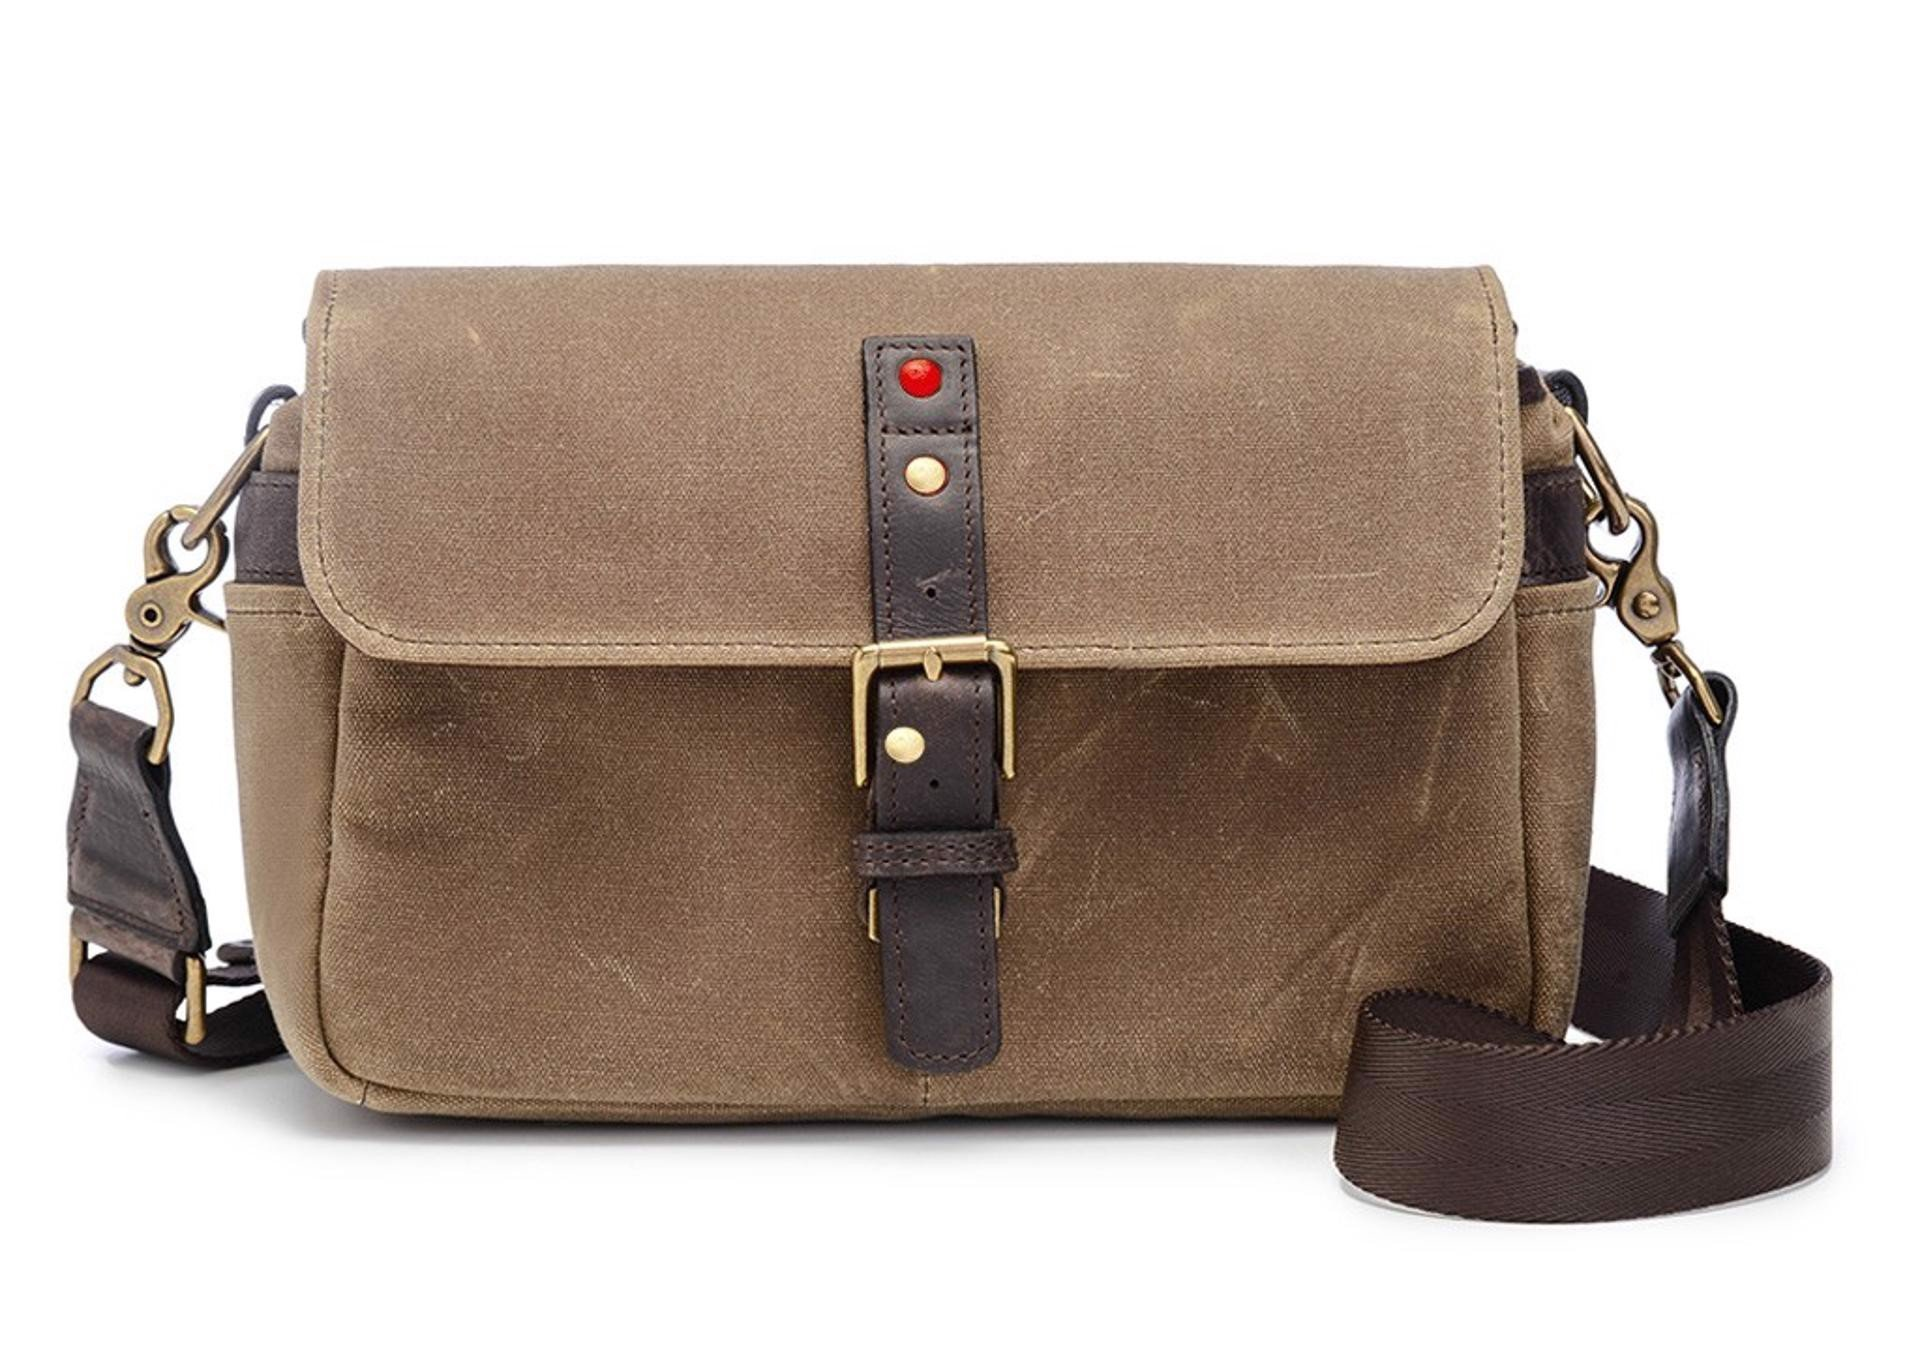 LEICA COLLECTION BY ONA, BOWERY CAMERA BAG - Field Tan